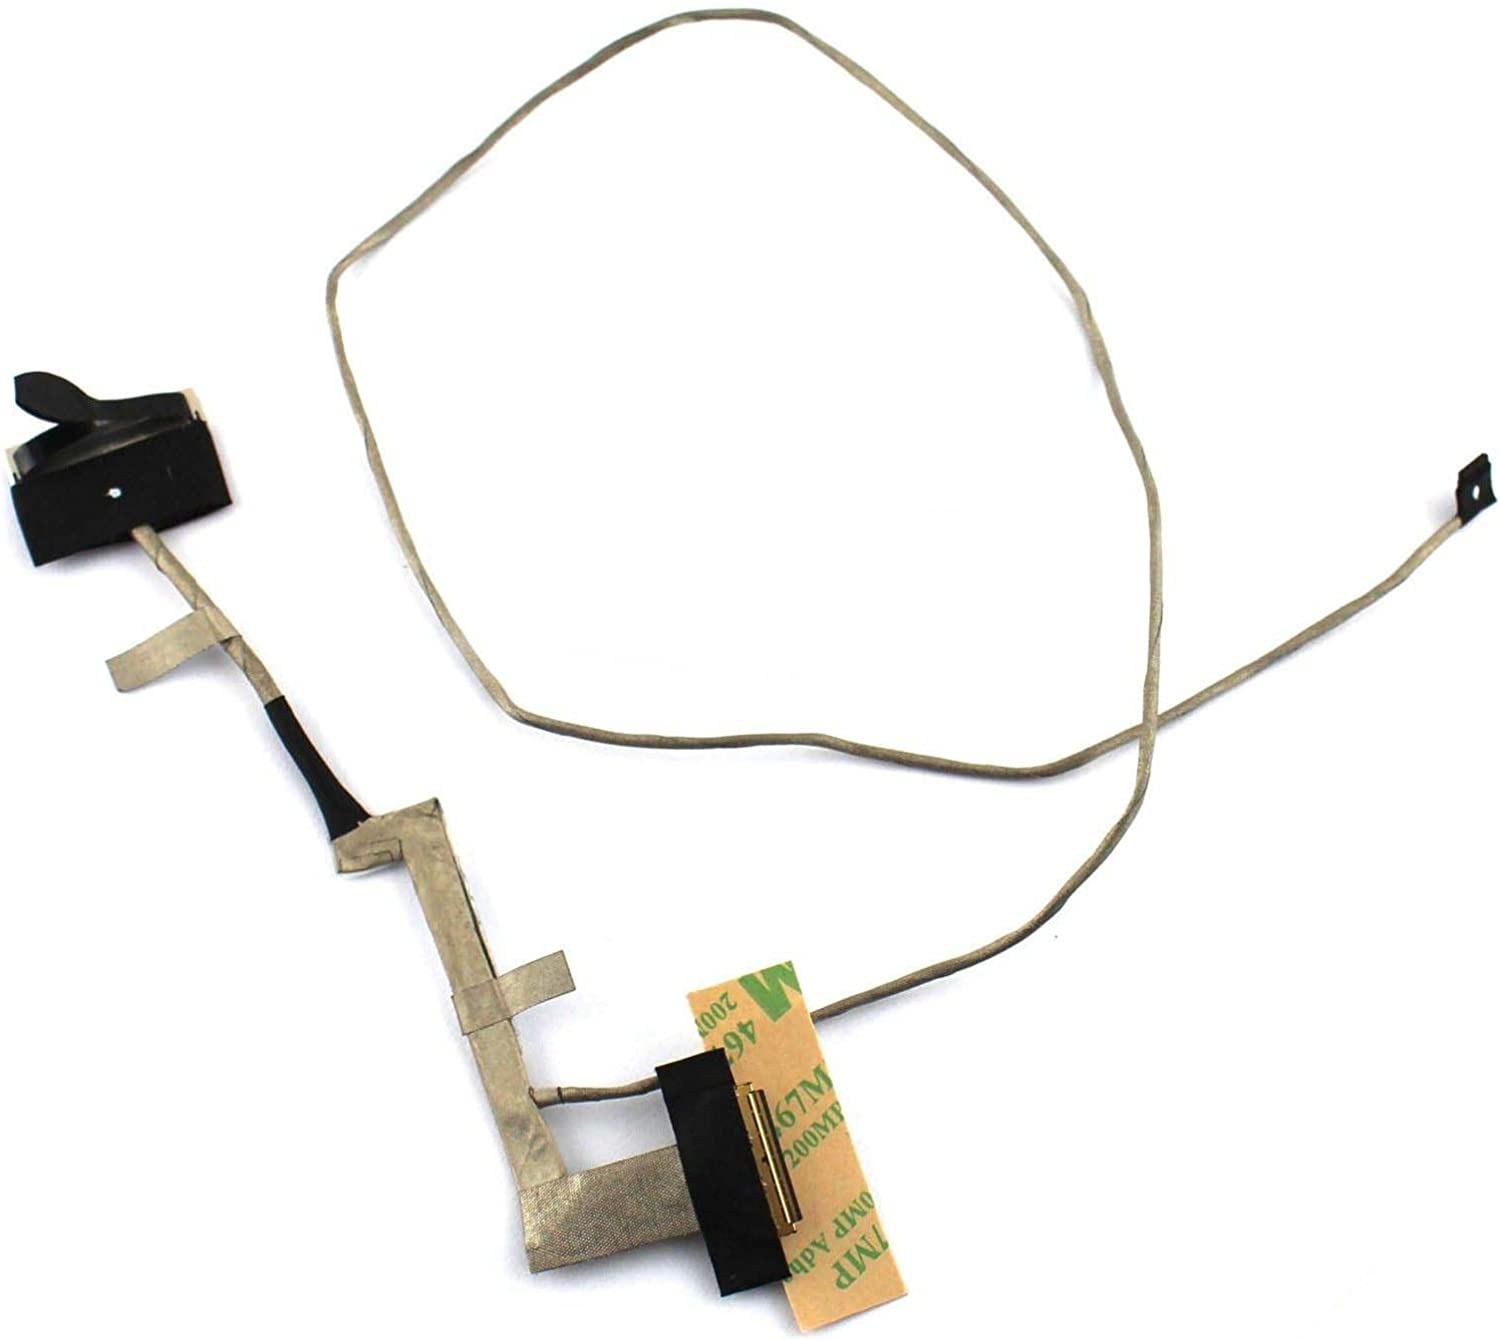 Nbparts New/Oirg for Lenovo Ideapad Y50 Y50-70 FHD 19201080 LCD Video Cable DC02001YQ00 ZIVY2 LVDS